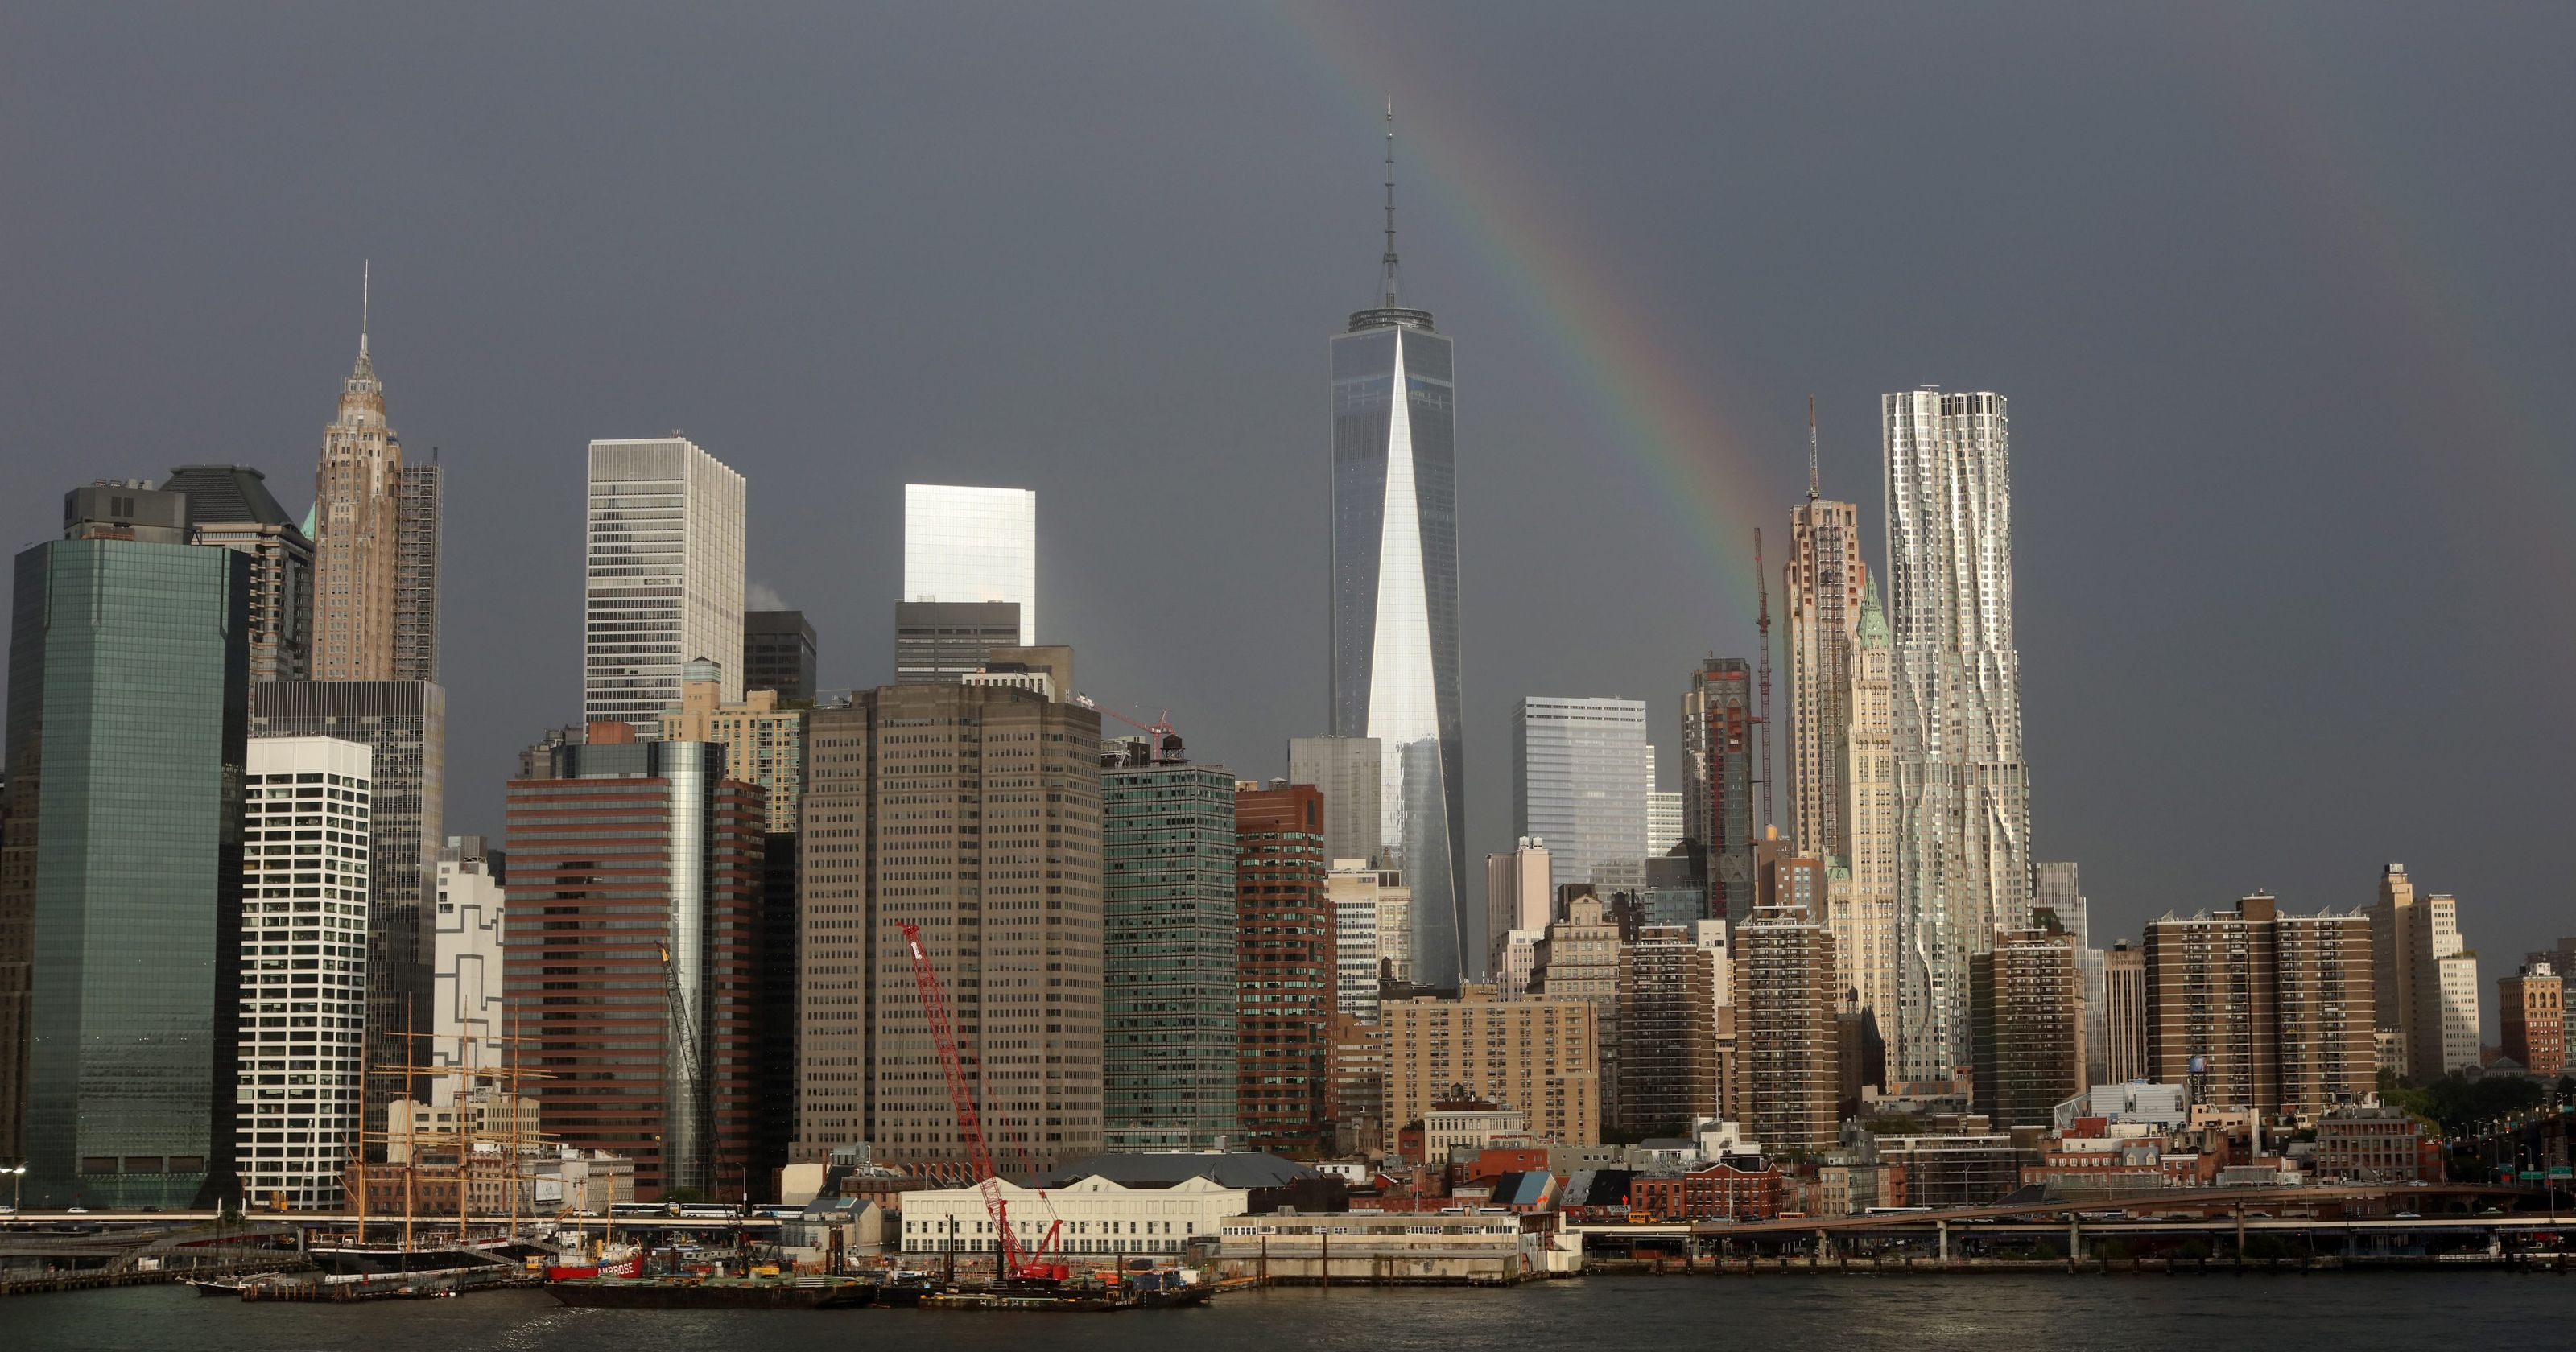 635774863008472198-1-One-World-Trade-Center-